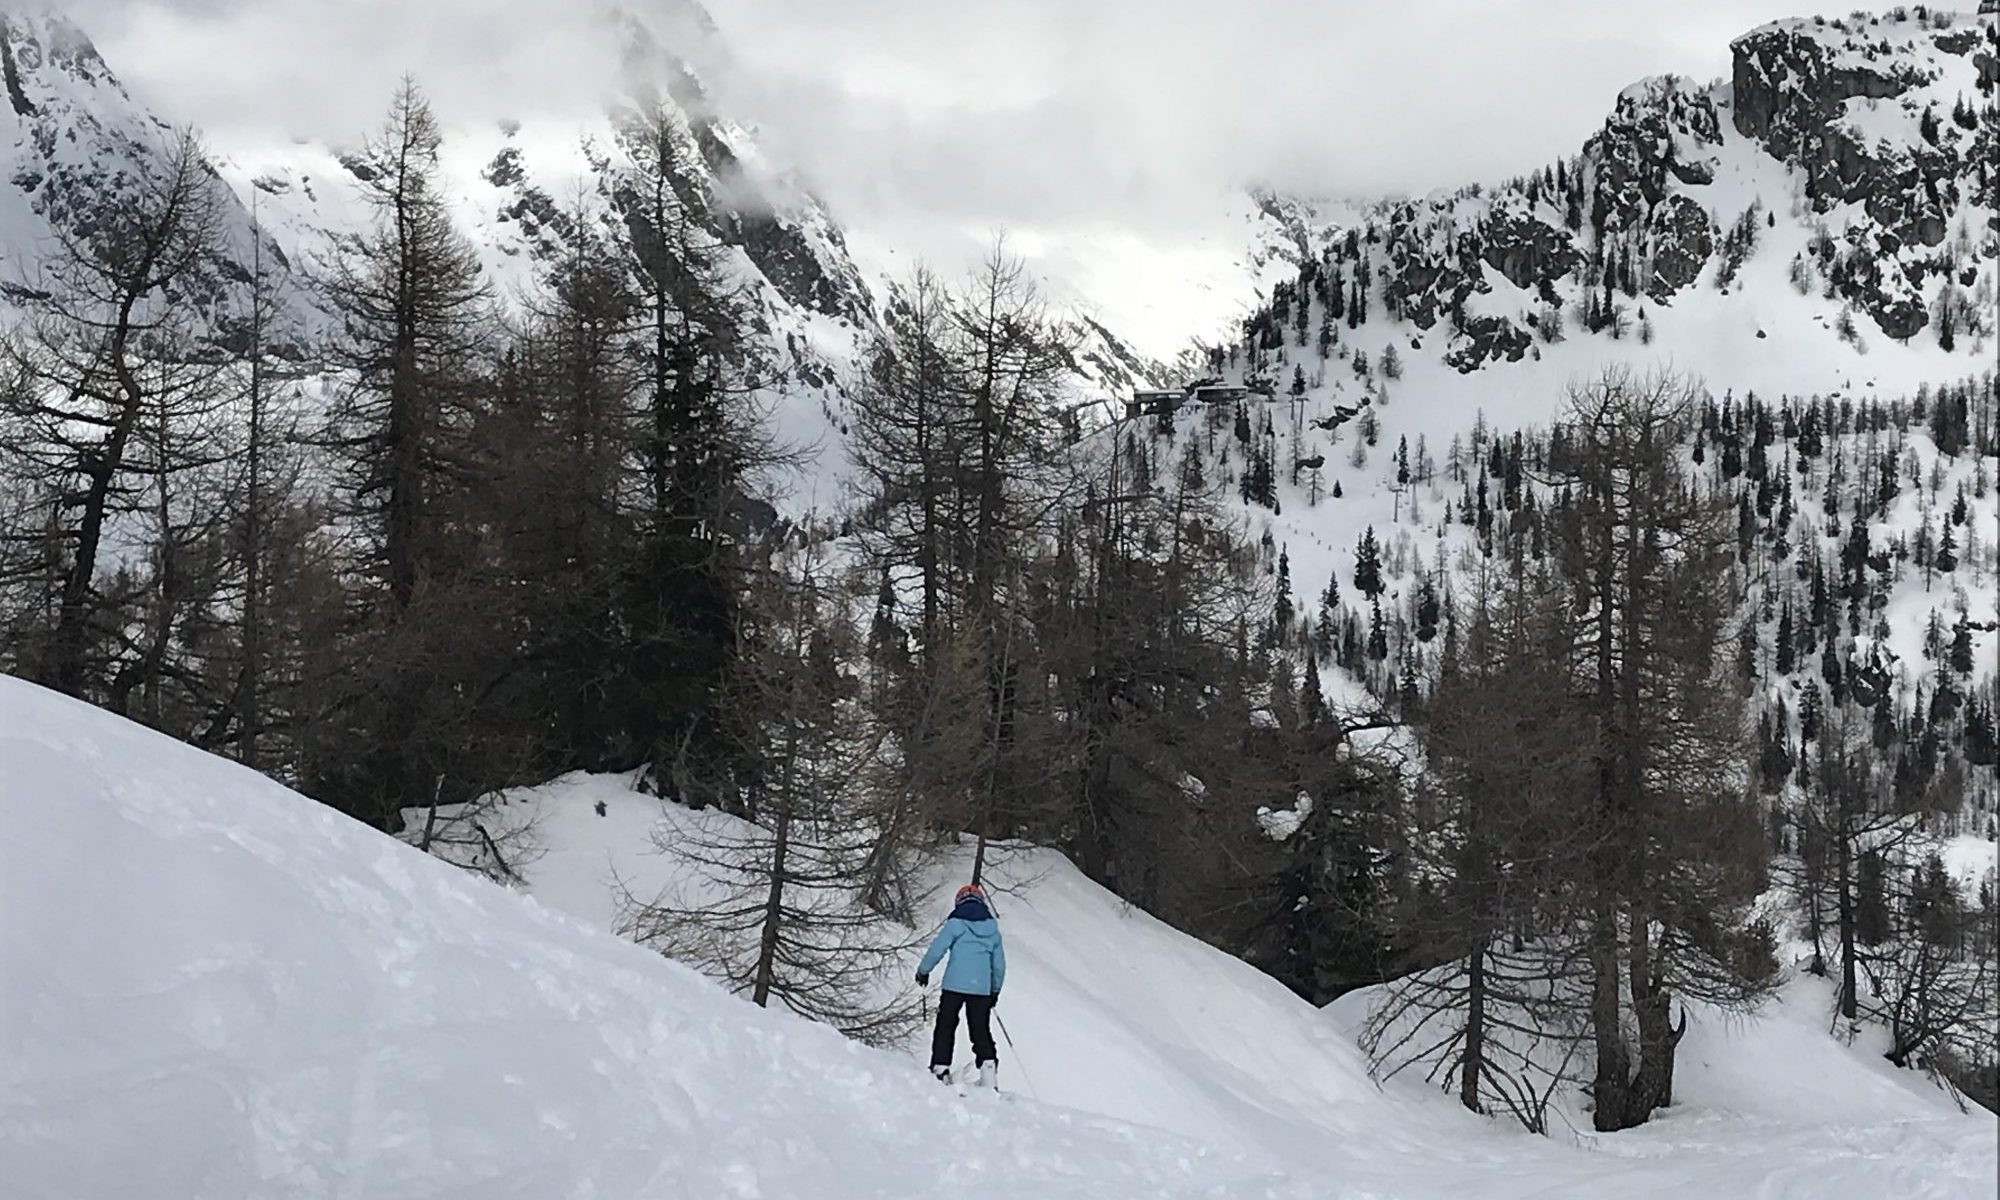 Courmayeur - Skiing to lunch at Maison Vielle. The Amazing Ski Area of Courmayeur